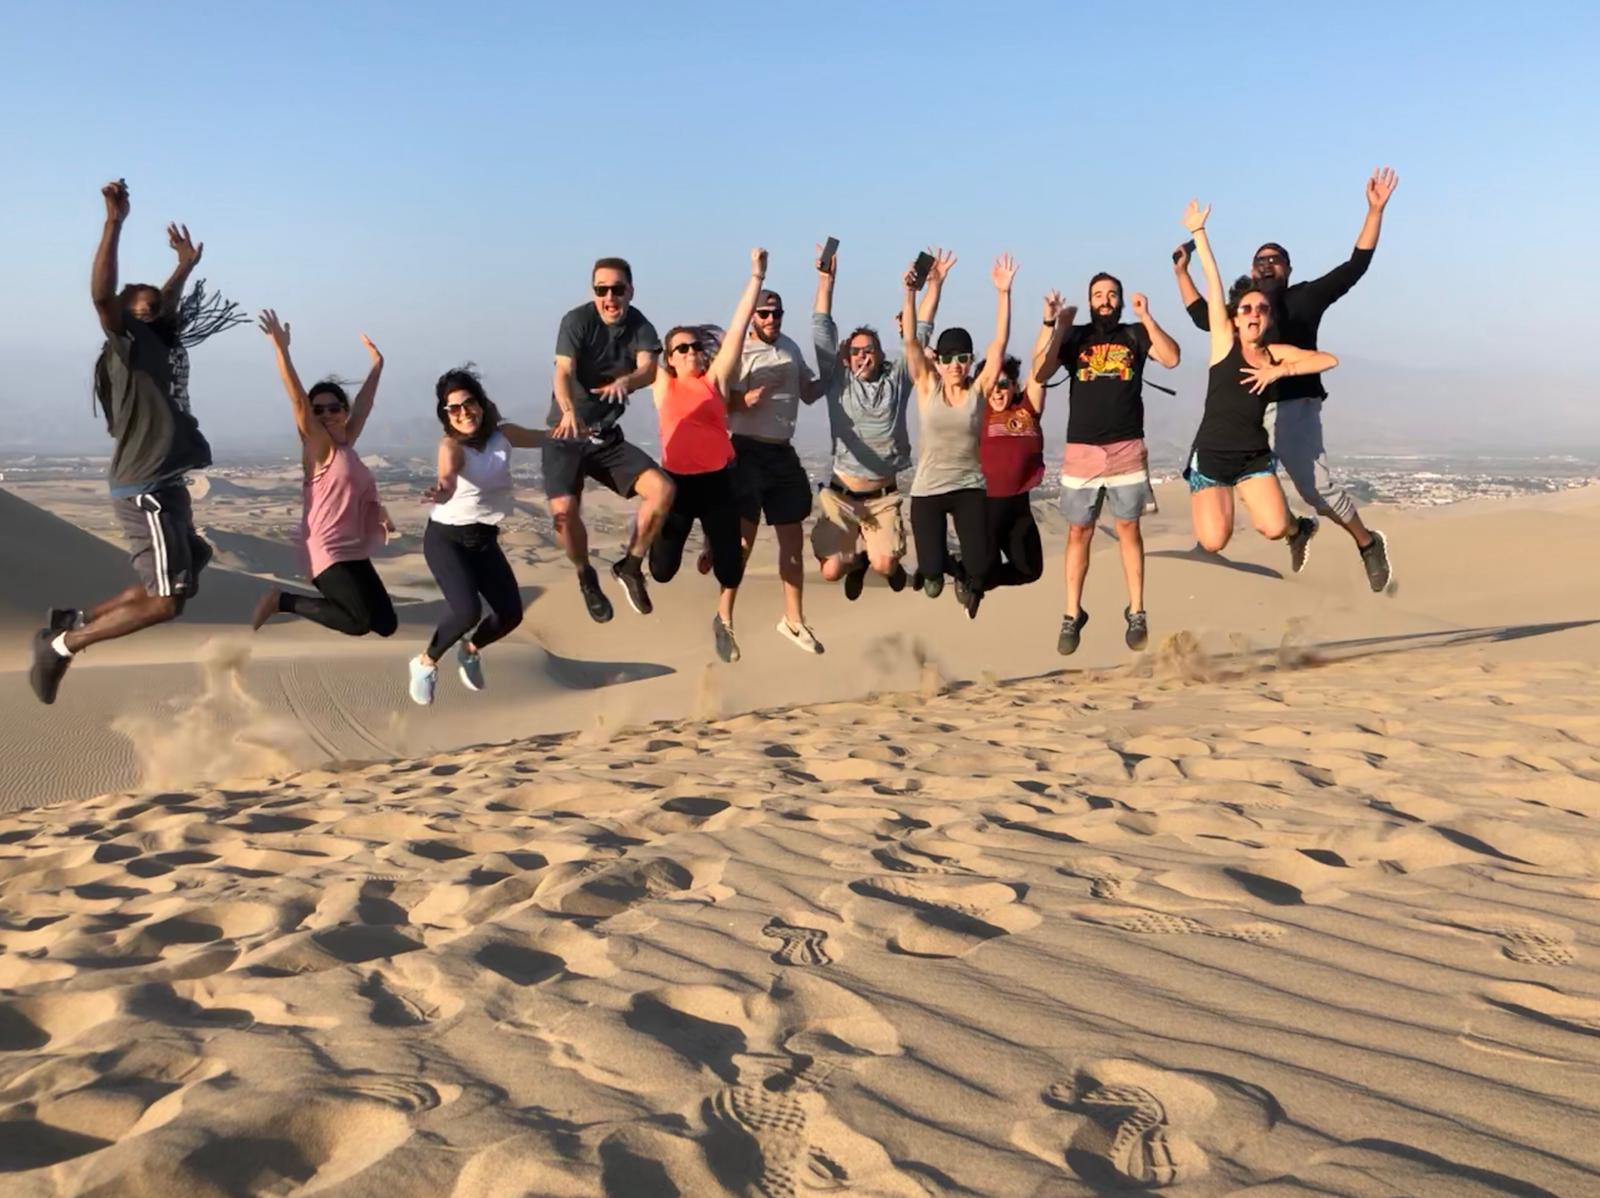 Group pic in the desert at Huacachina